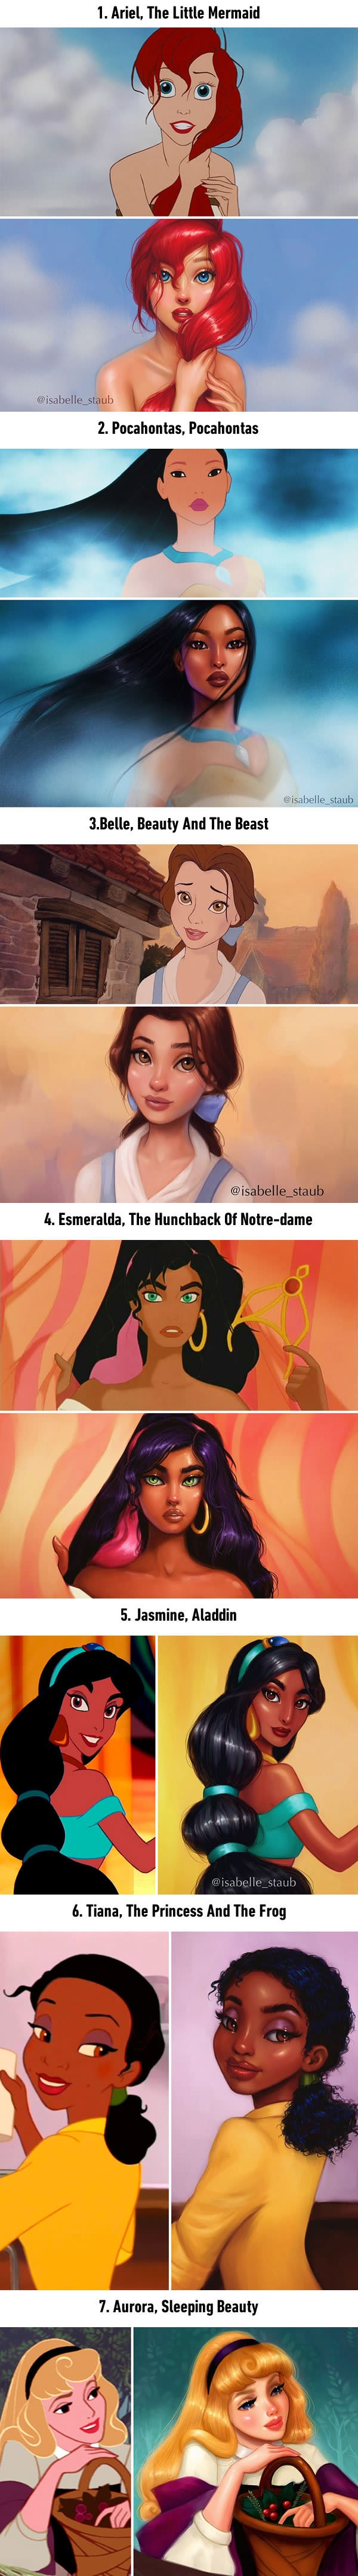 Illustrator repaints Disney princesses